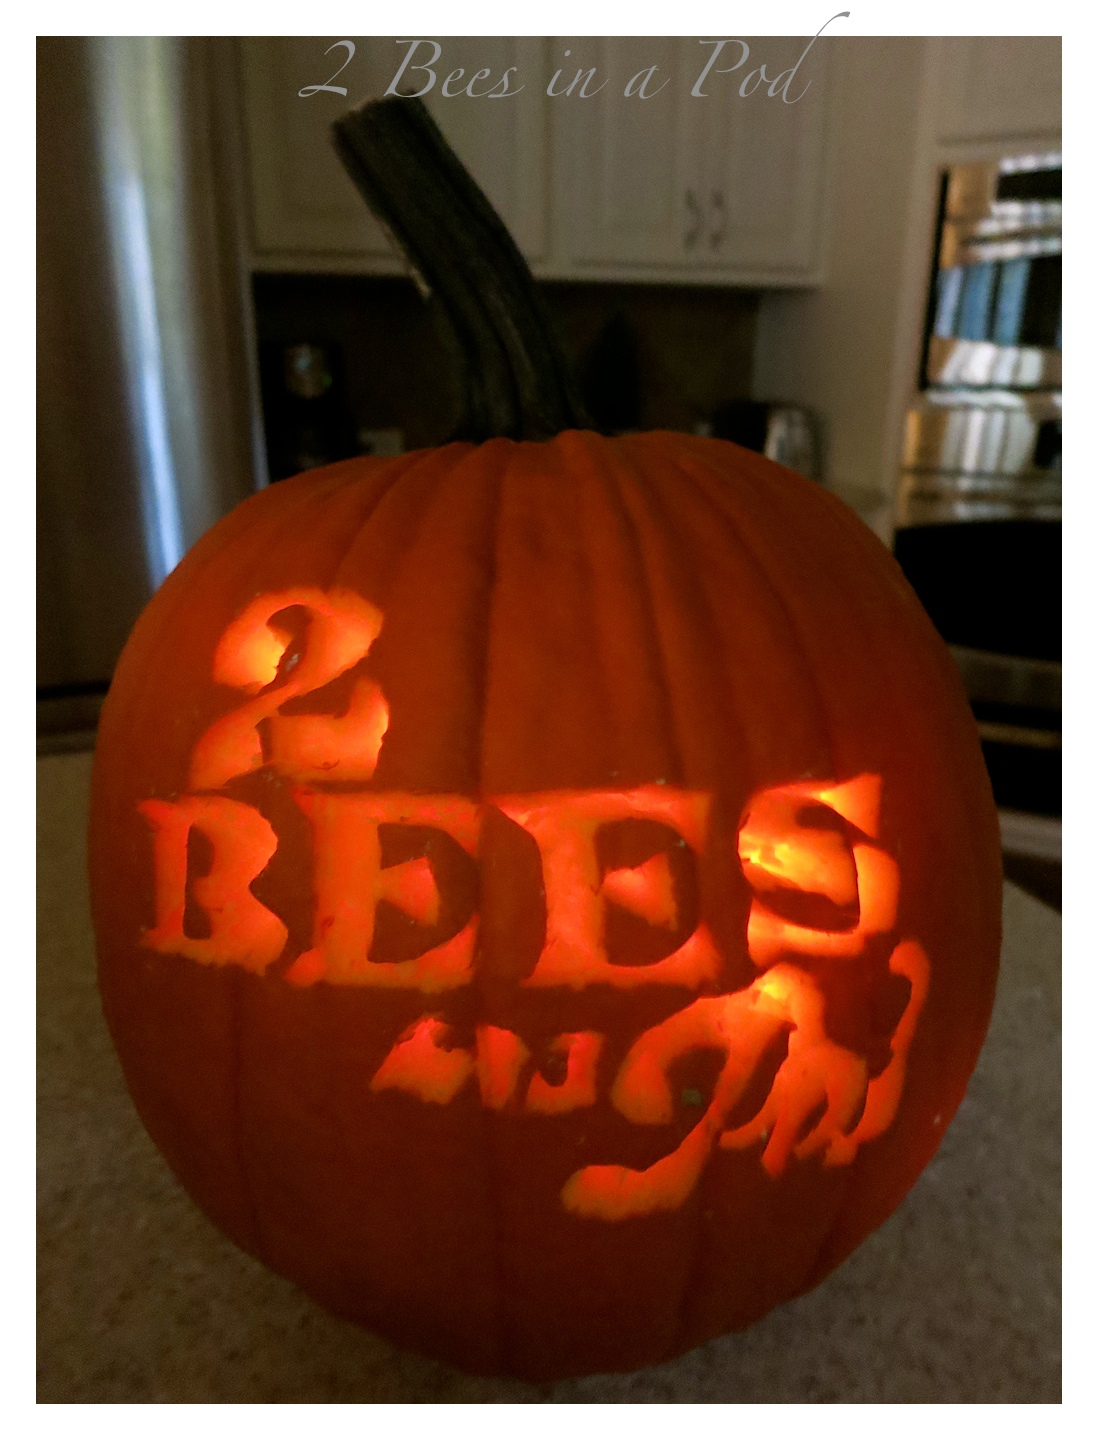 My honey bee surprised me and carved our logo into a pumpkin...so Happy. Great job!!!